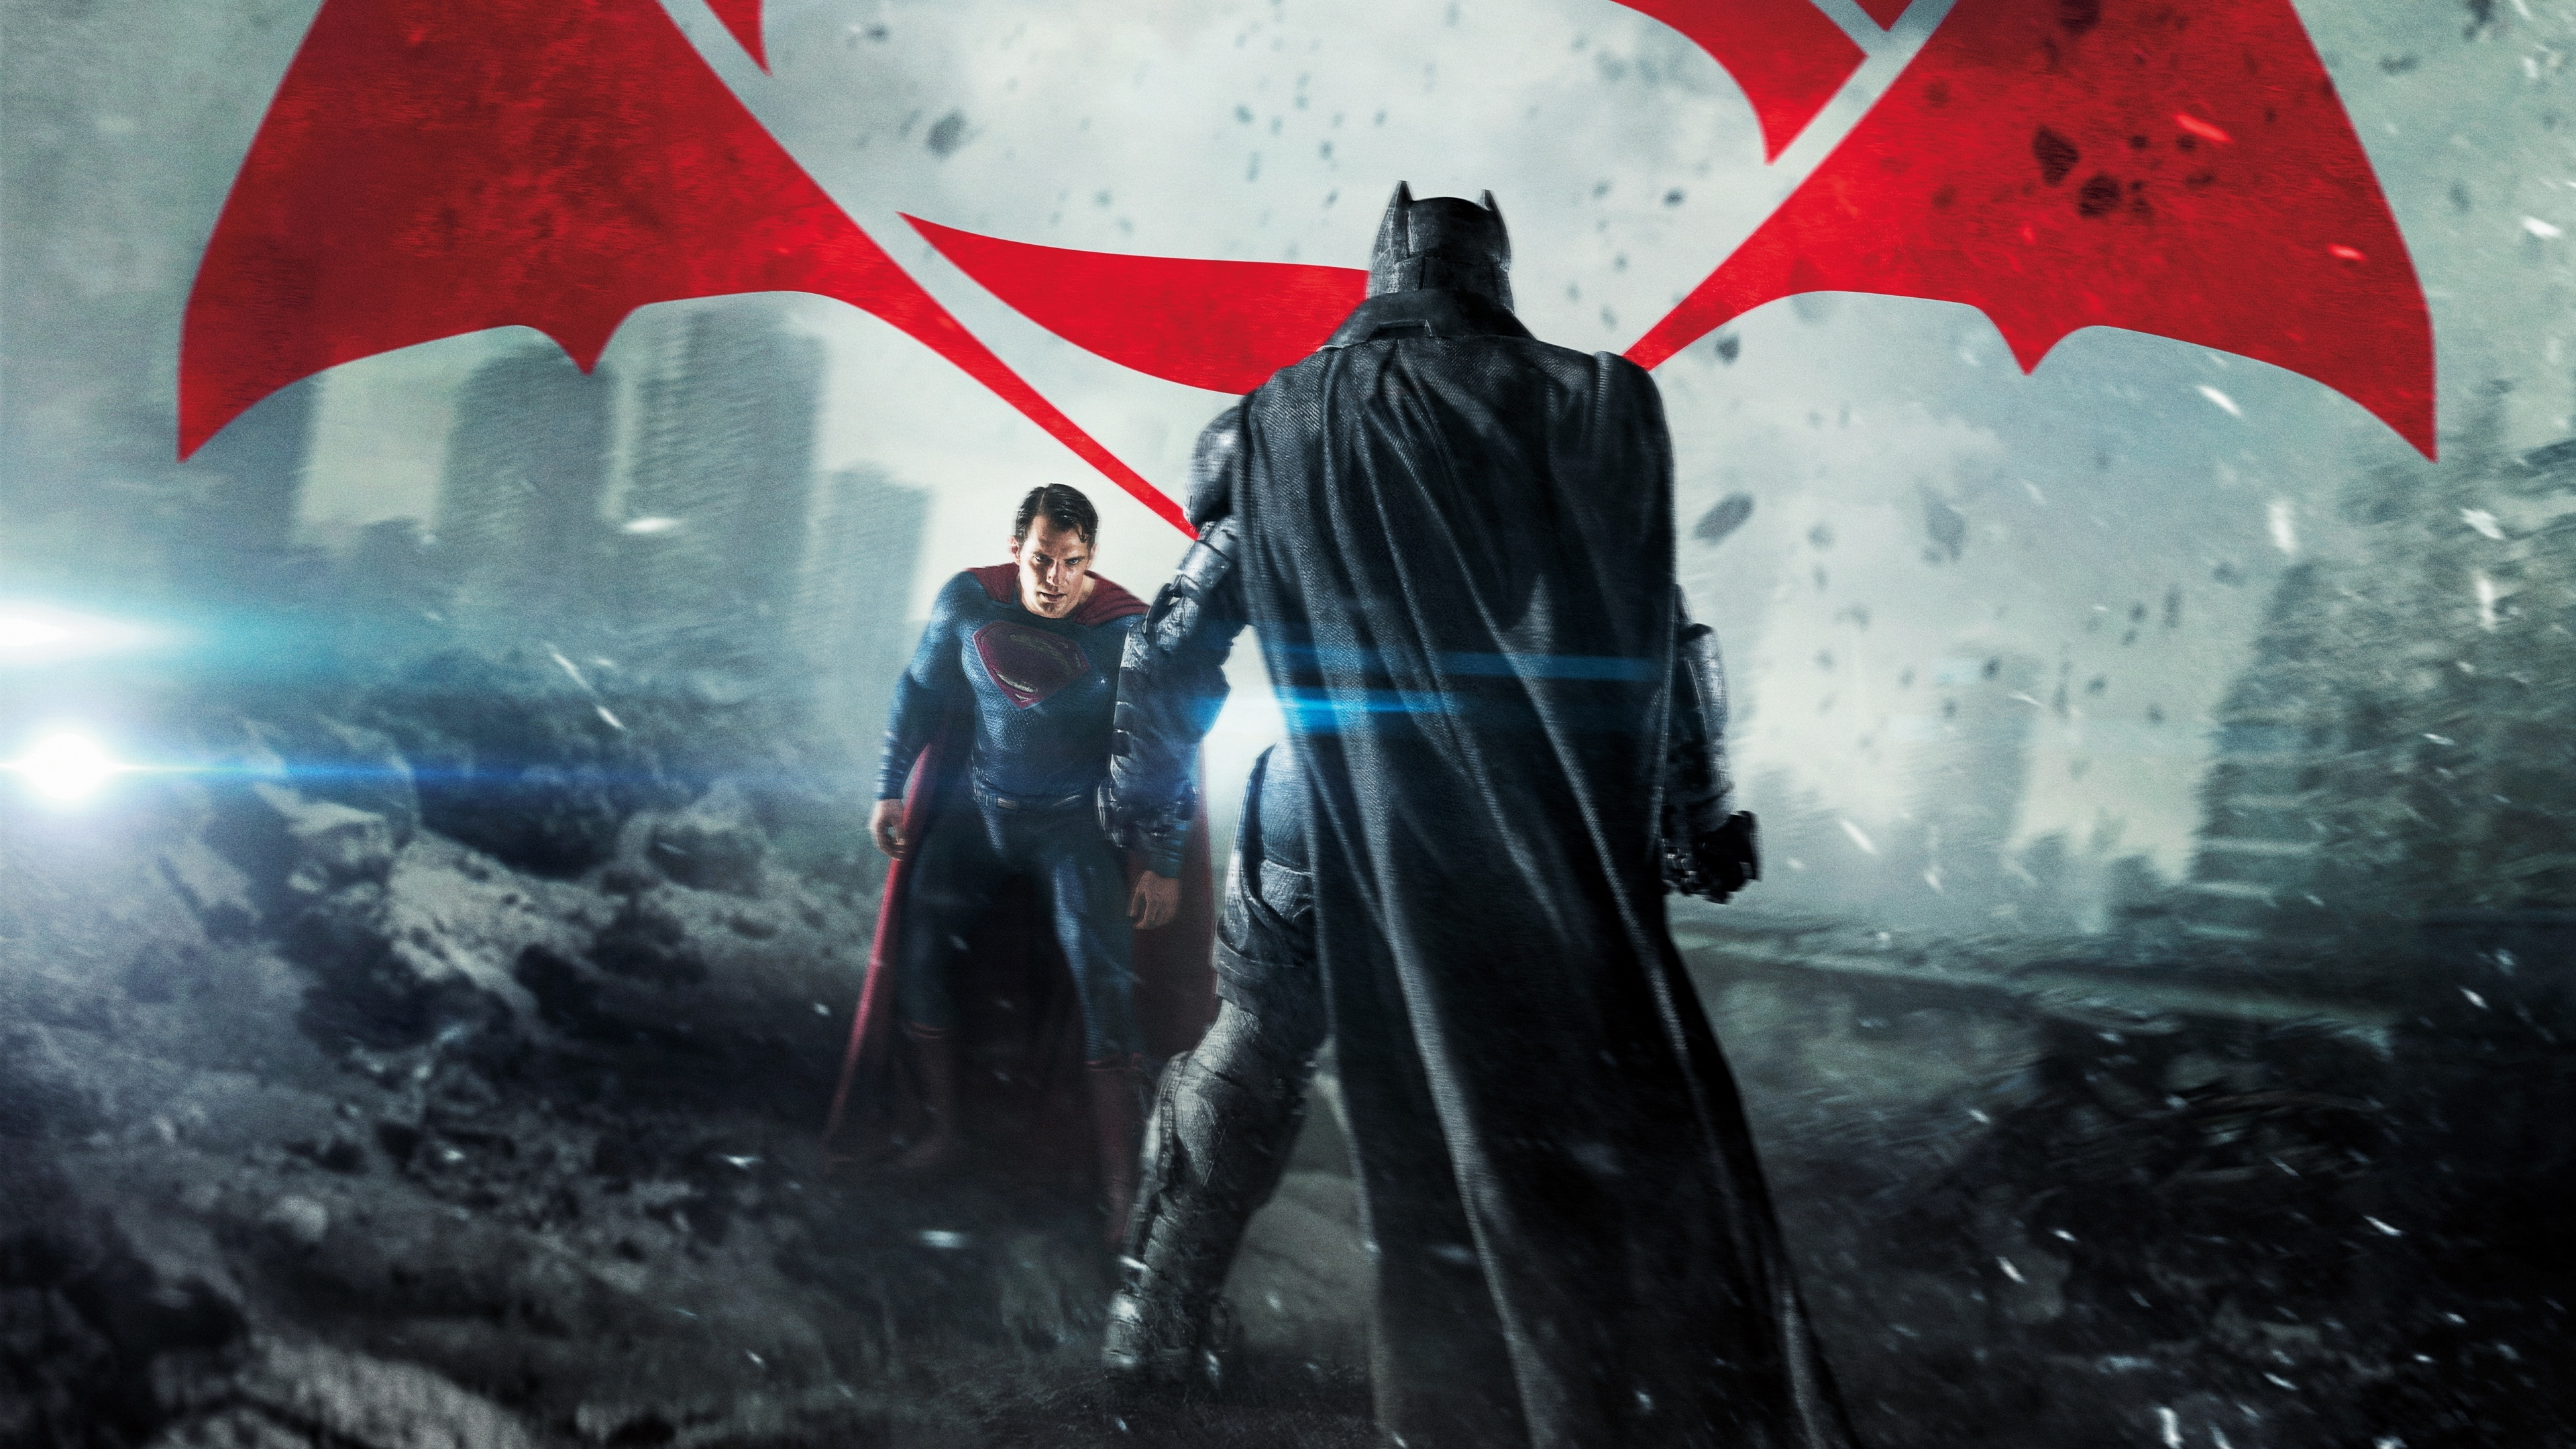 batman v superman: dawn of justice 4k ultra hd fond d'écran and